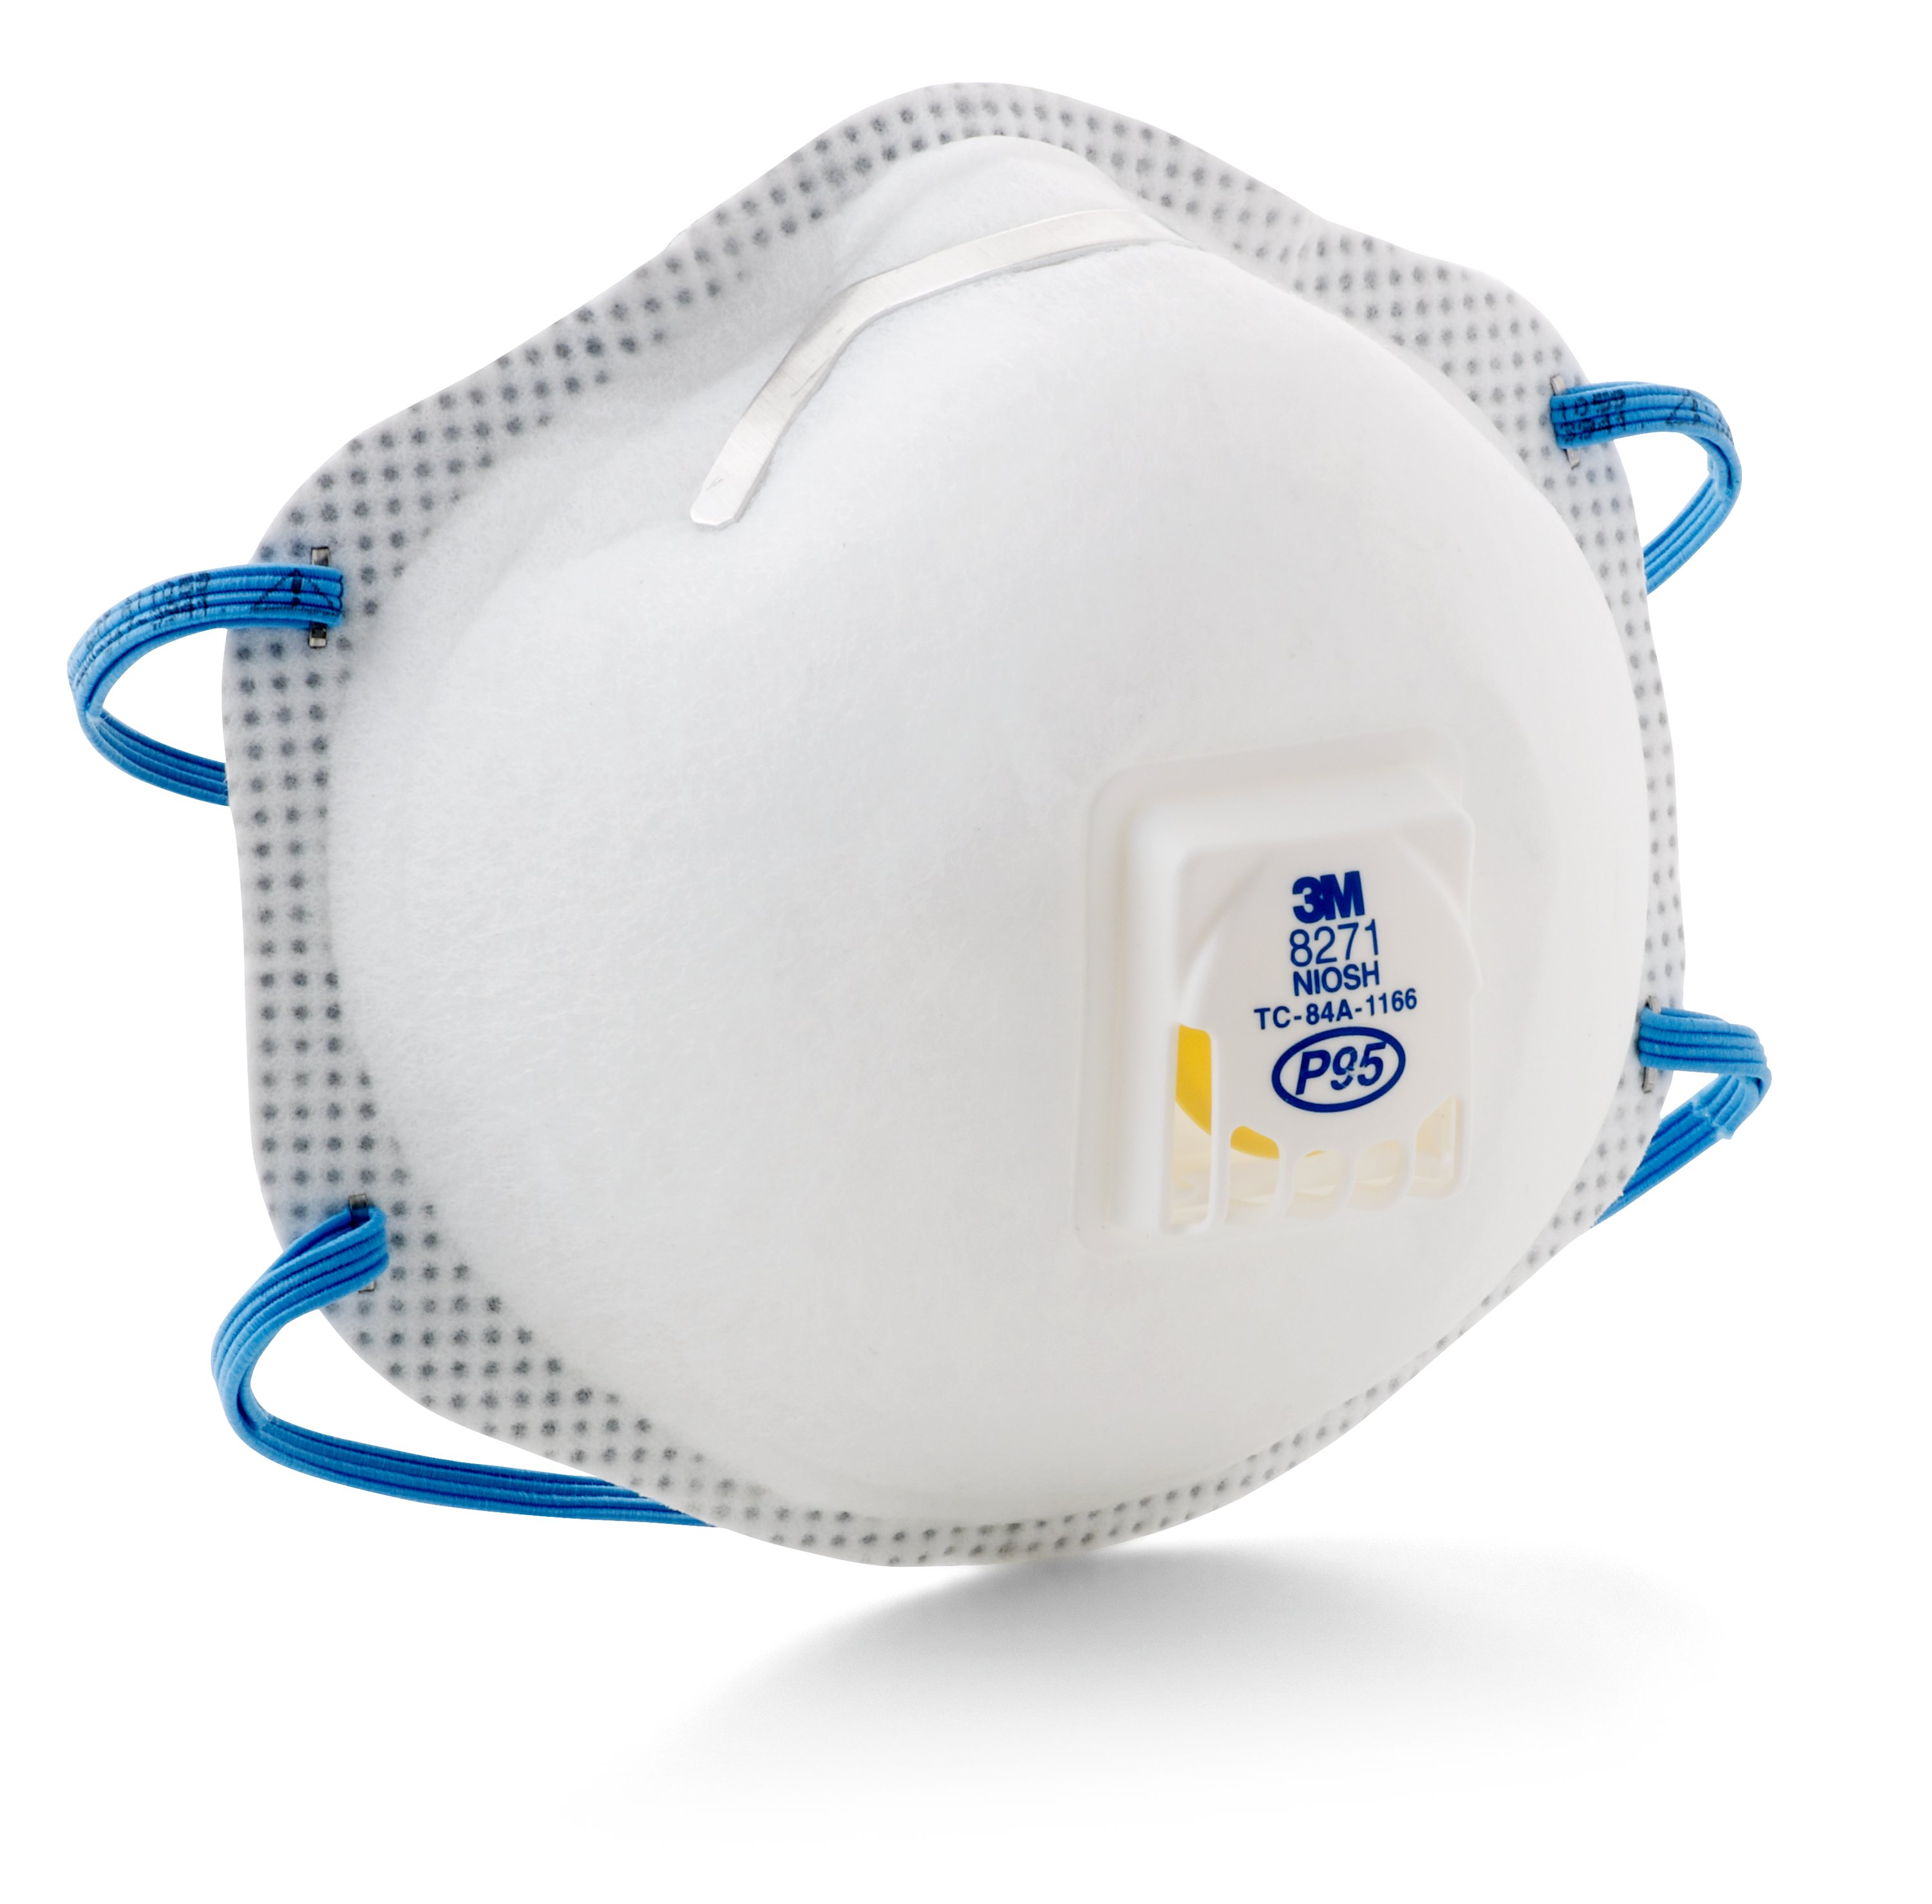 3M™ 8233 Standard Particulate Respirator, Resists: Non-Oil Based Particles